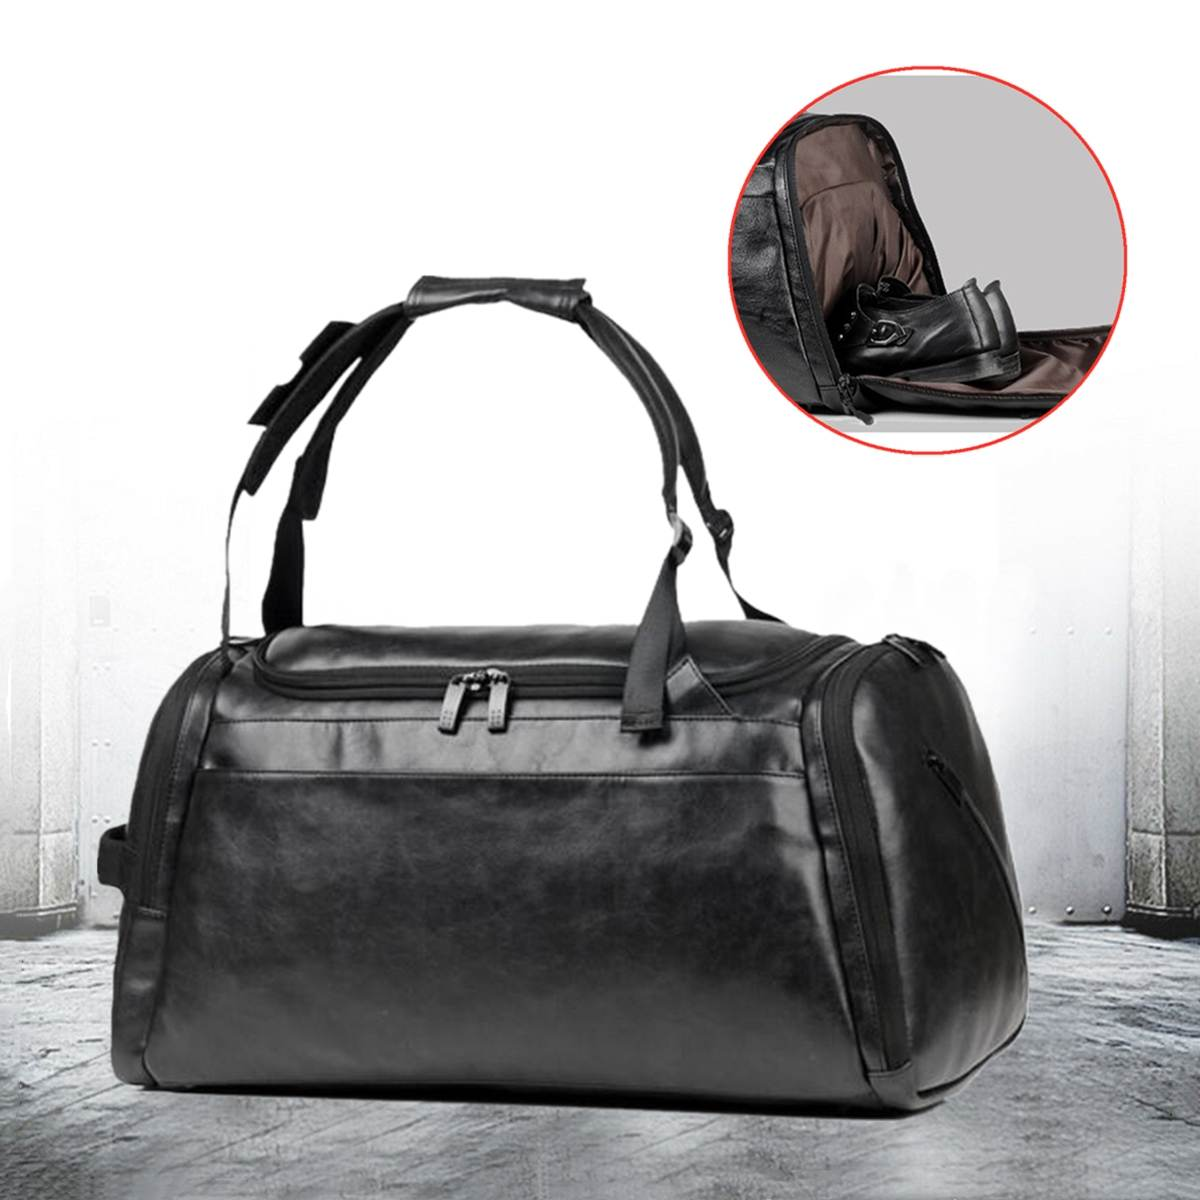 Multifunctional Leather Men Women Luggage Travel Bag Large Capacity Duffle Bag Satchel Shoulder Gym Sports Handbag Mochila Bolso